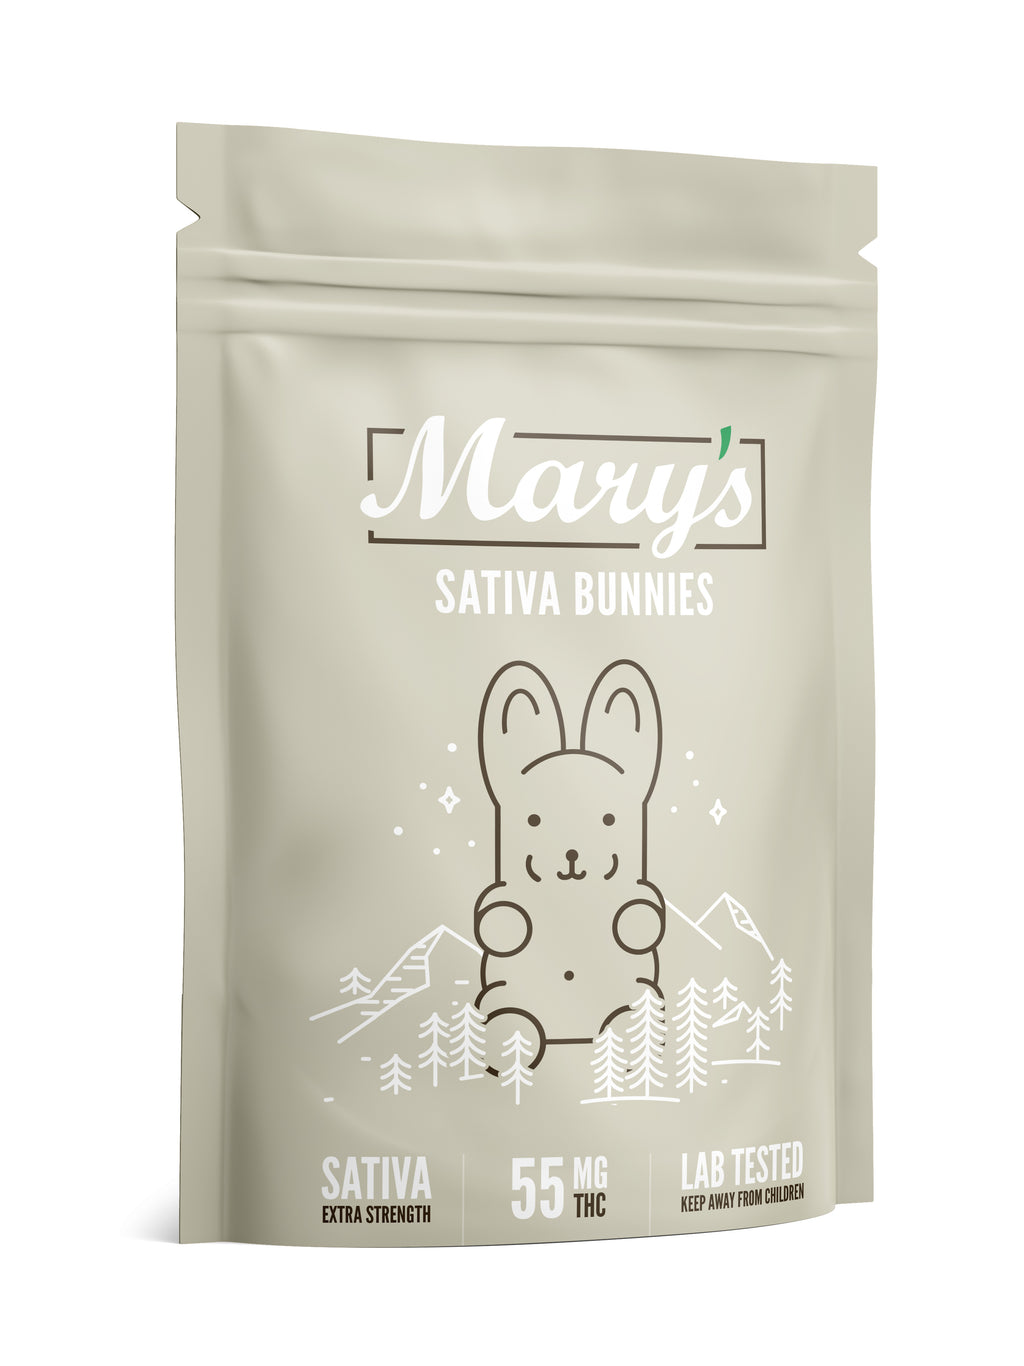 Extra Strength Sativa Bunnies 55mg THC (Marry's Medibles)